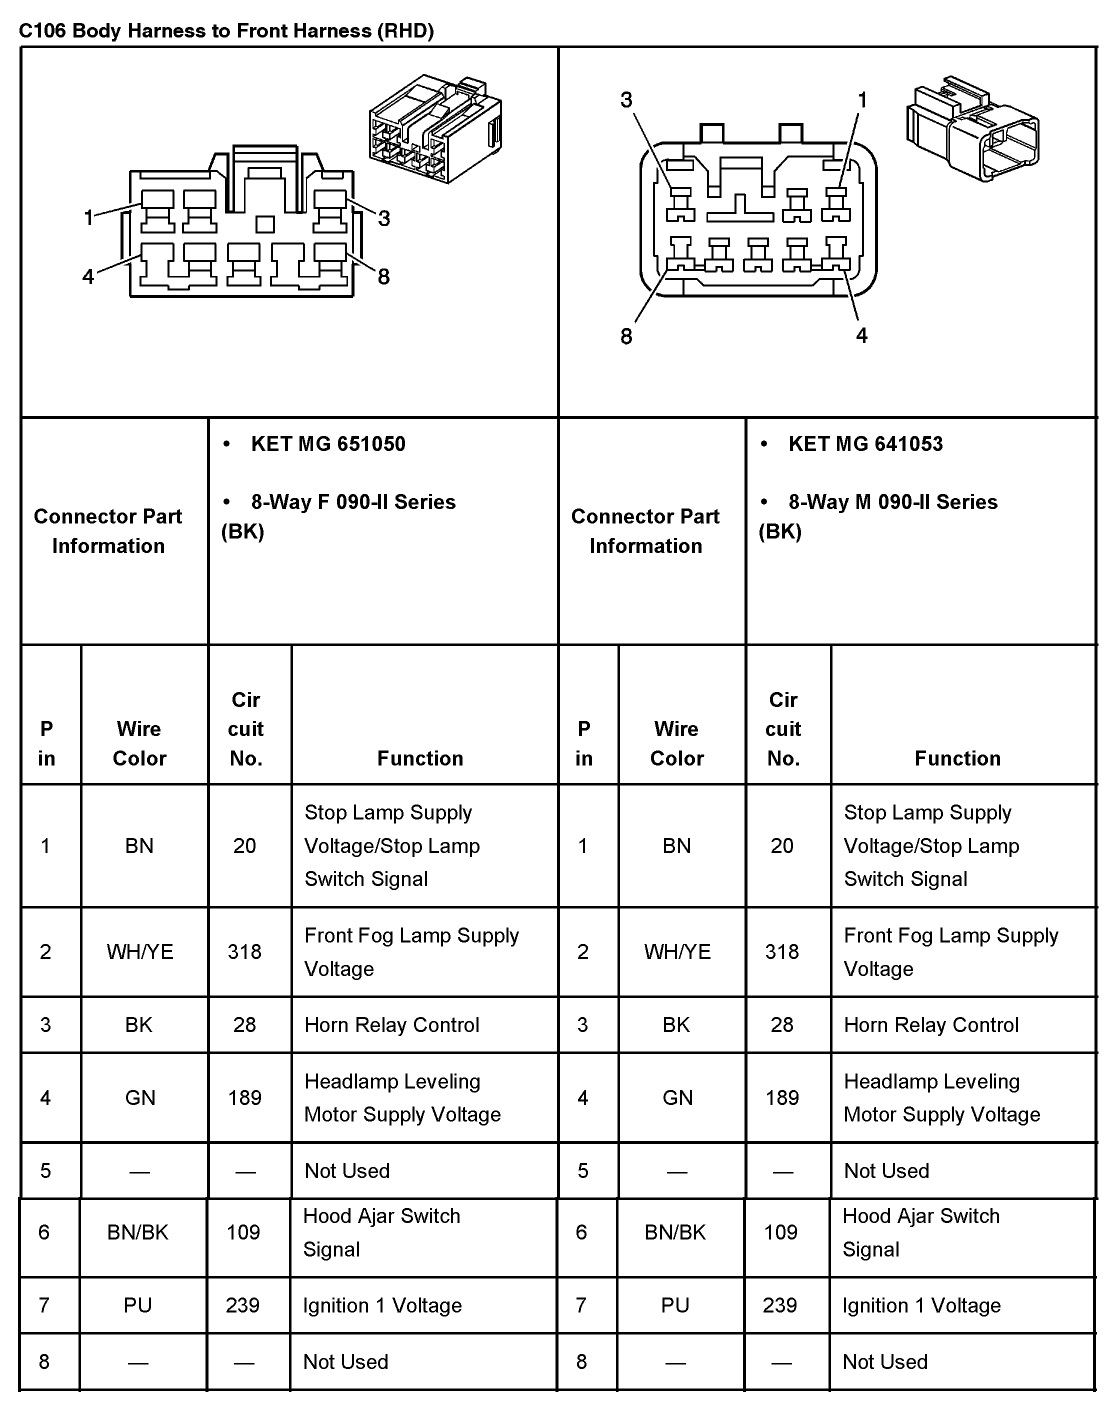 7331d1383704576 2005 aveo master connector list diagrams conn3 jpg 2008 chevy aveo fuse box diagram chevy aveo door lock diagram 2013 chevy cruze fuse box diagram at virtualis.co